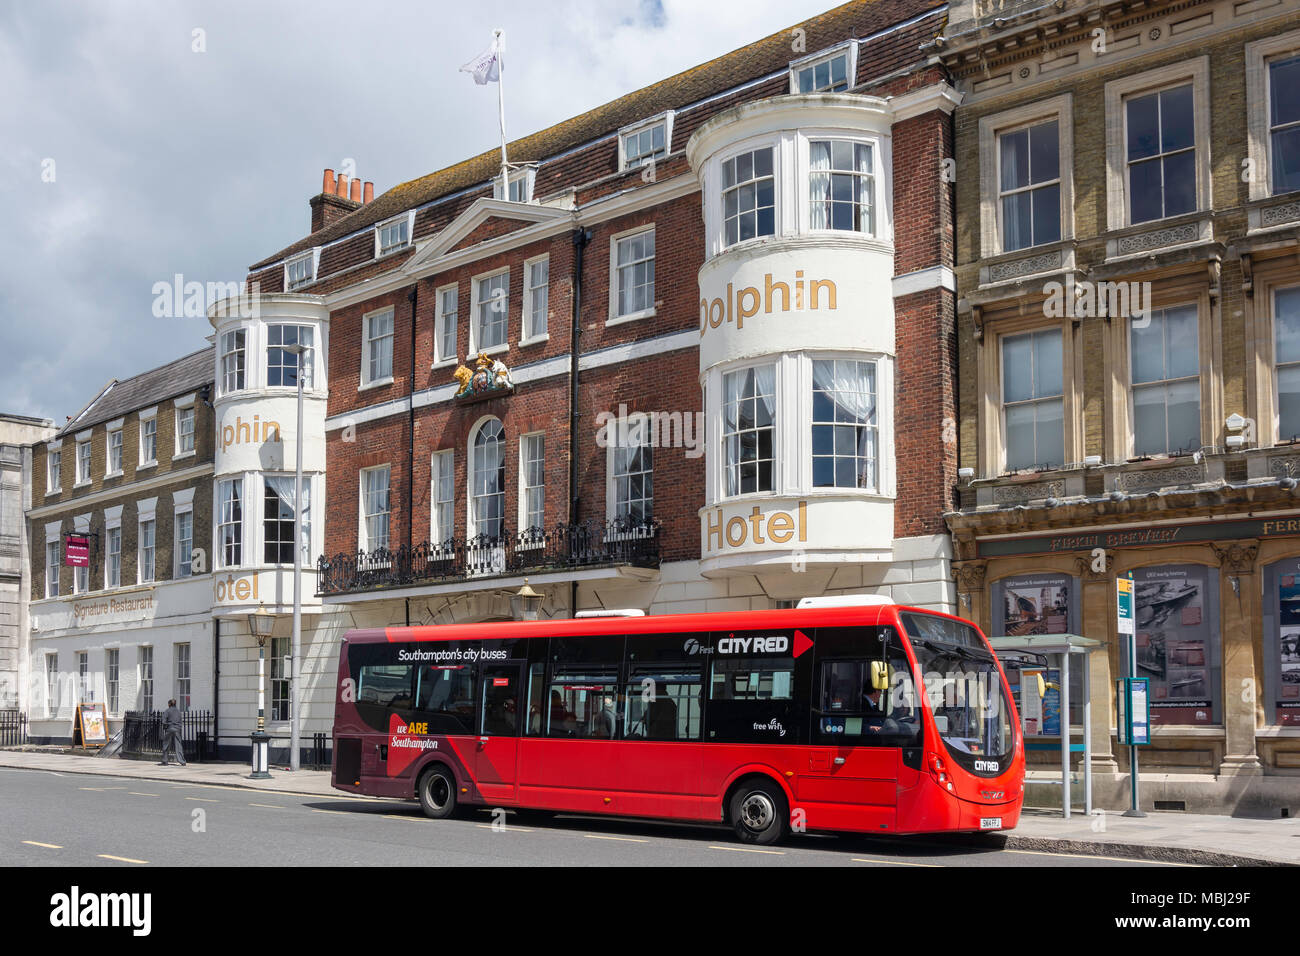 First City Red bus outside The Dolphin Hotel, High Street, Southampton, Hampshire, England, United Kingdom - Stock Image